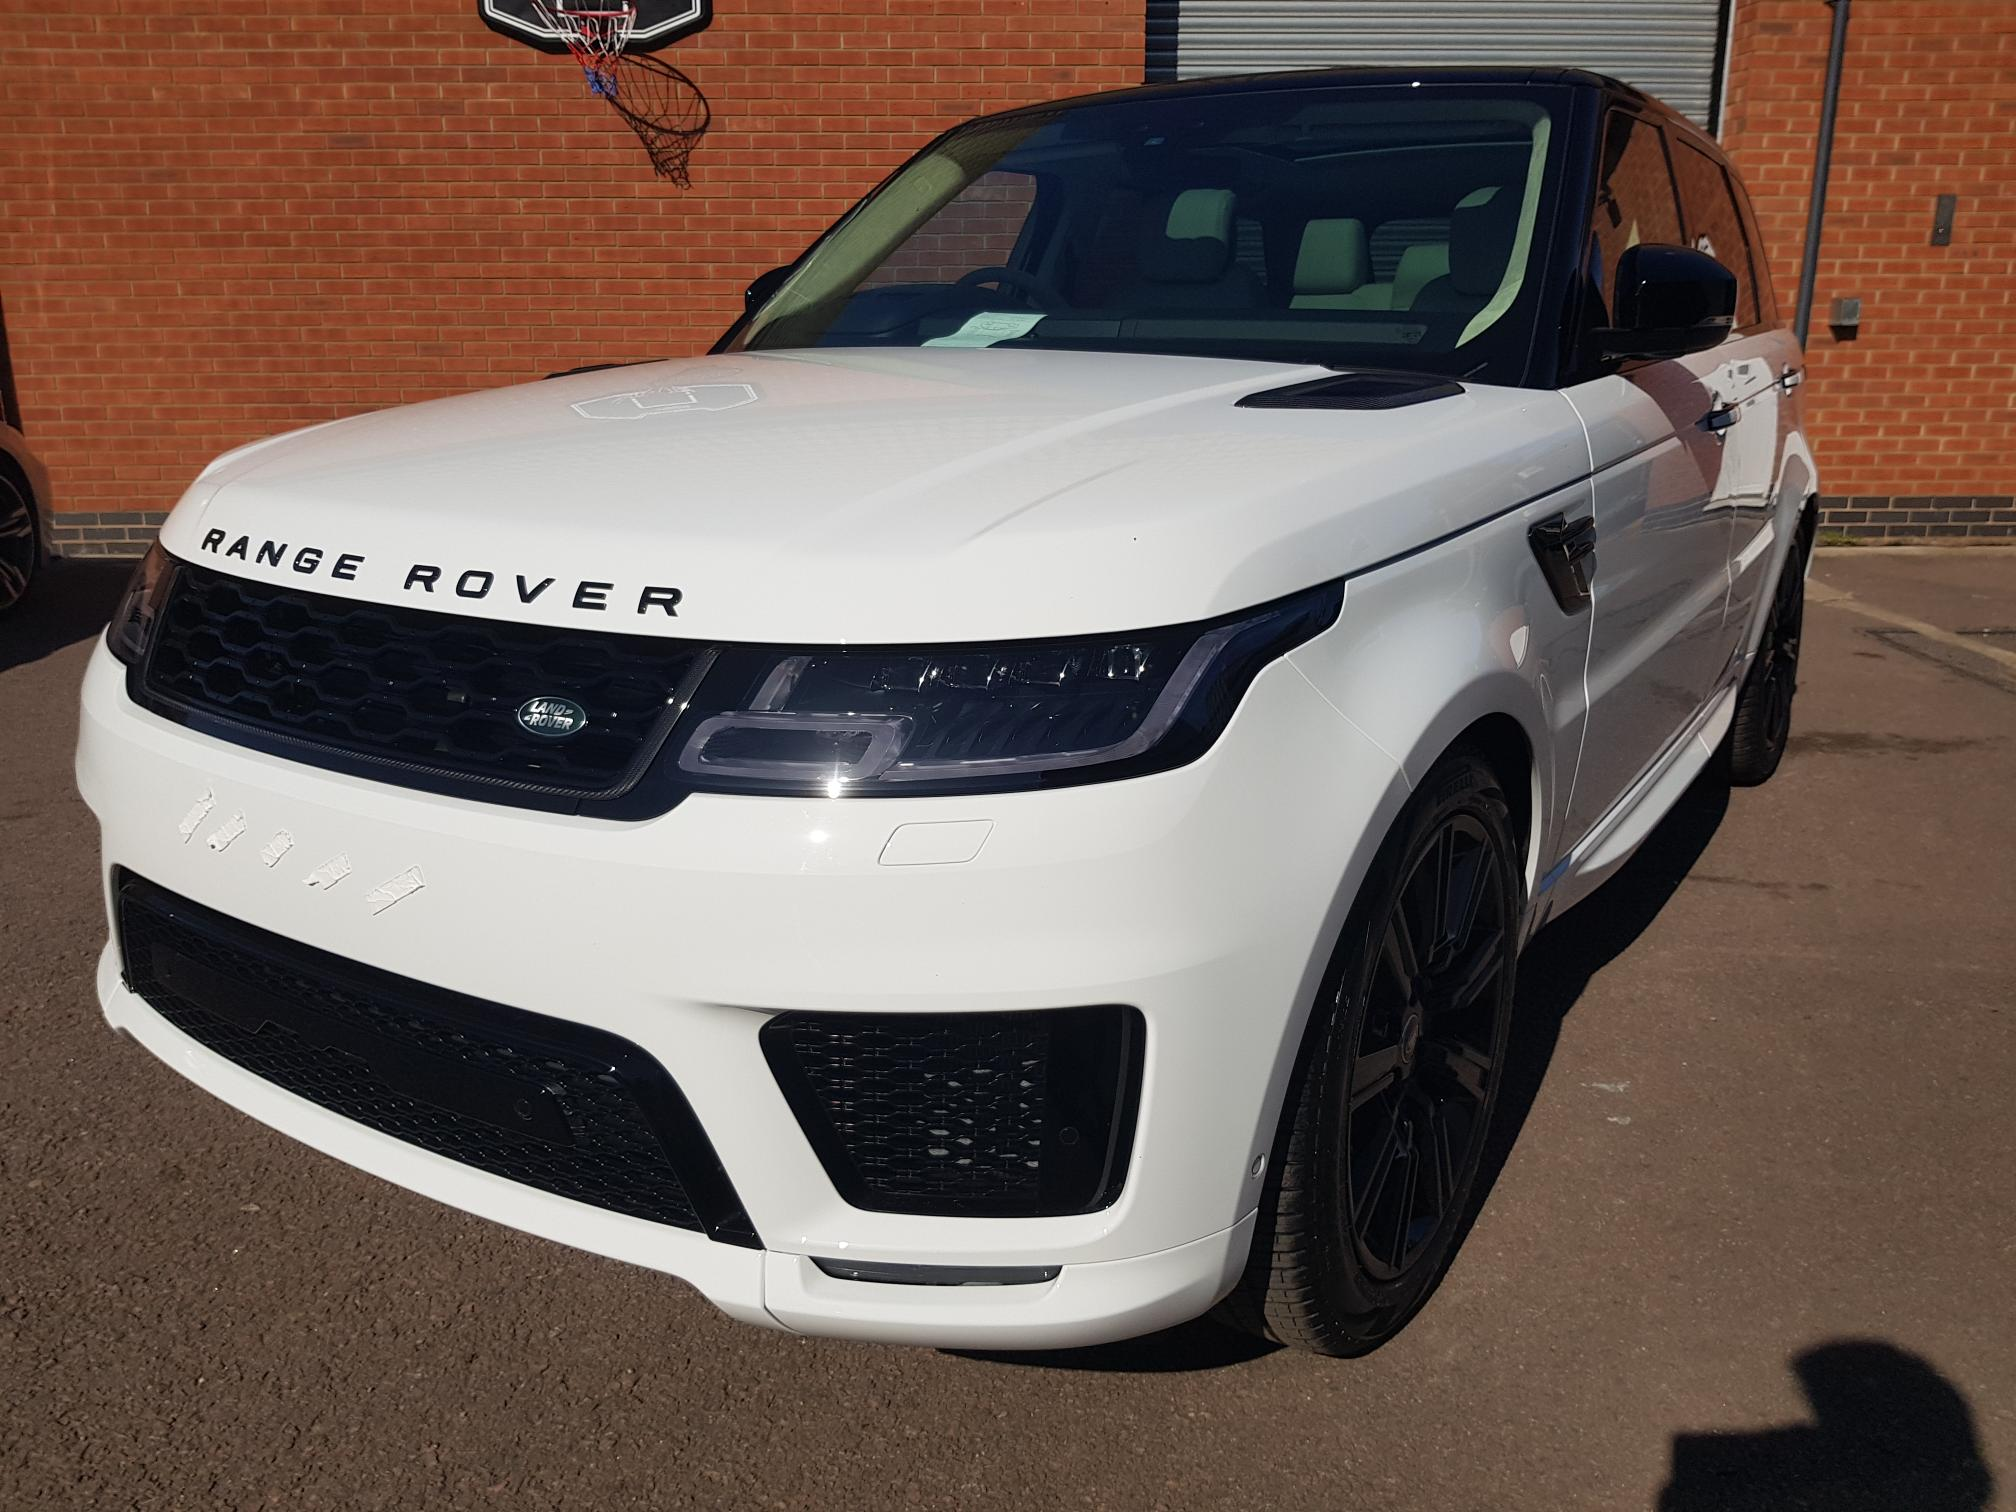 Range Rover Sport Range Rover Sport P400e Plug-in Hybrid Electric Vehicle 1